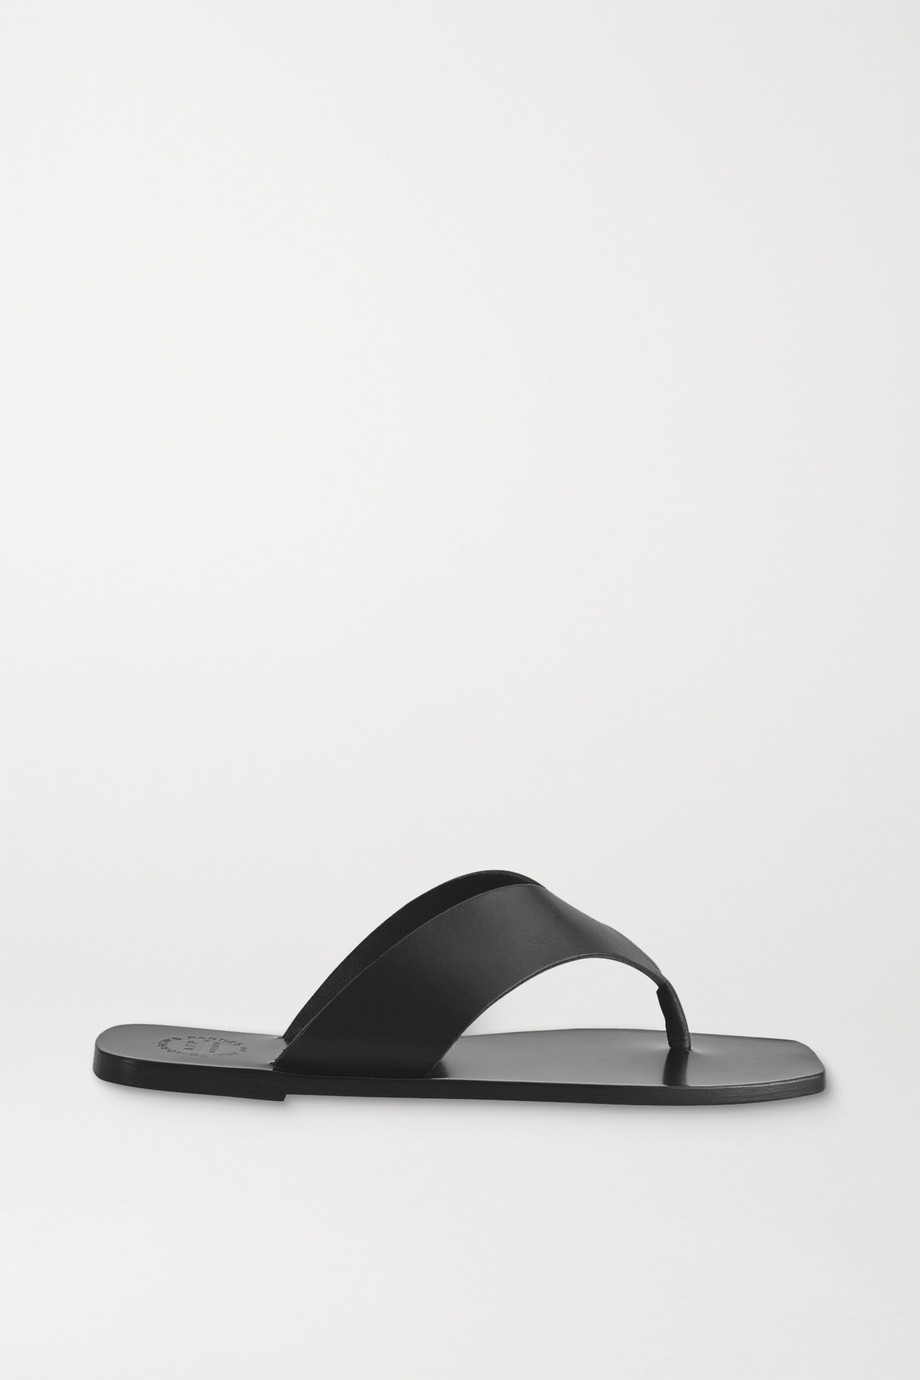 ATP Atelier Merine leather flip flops